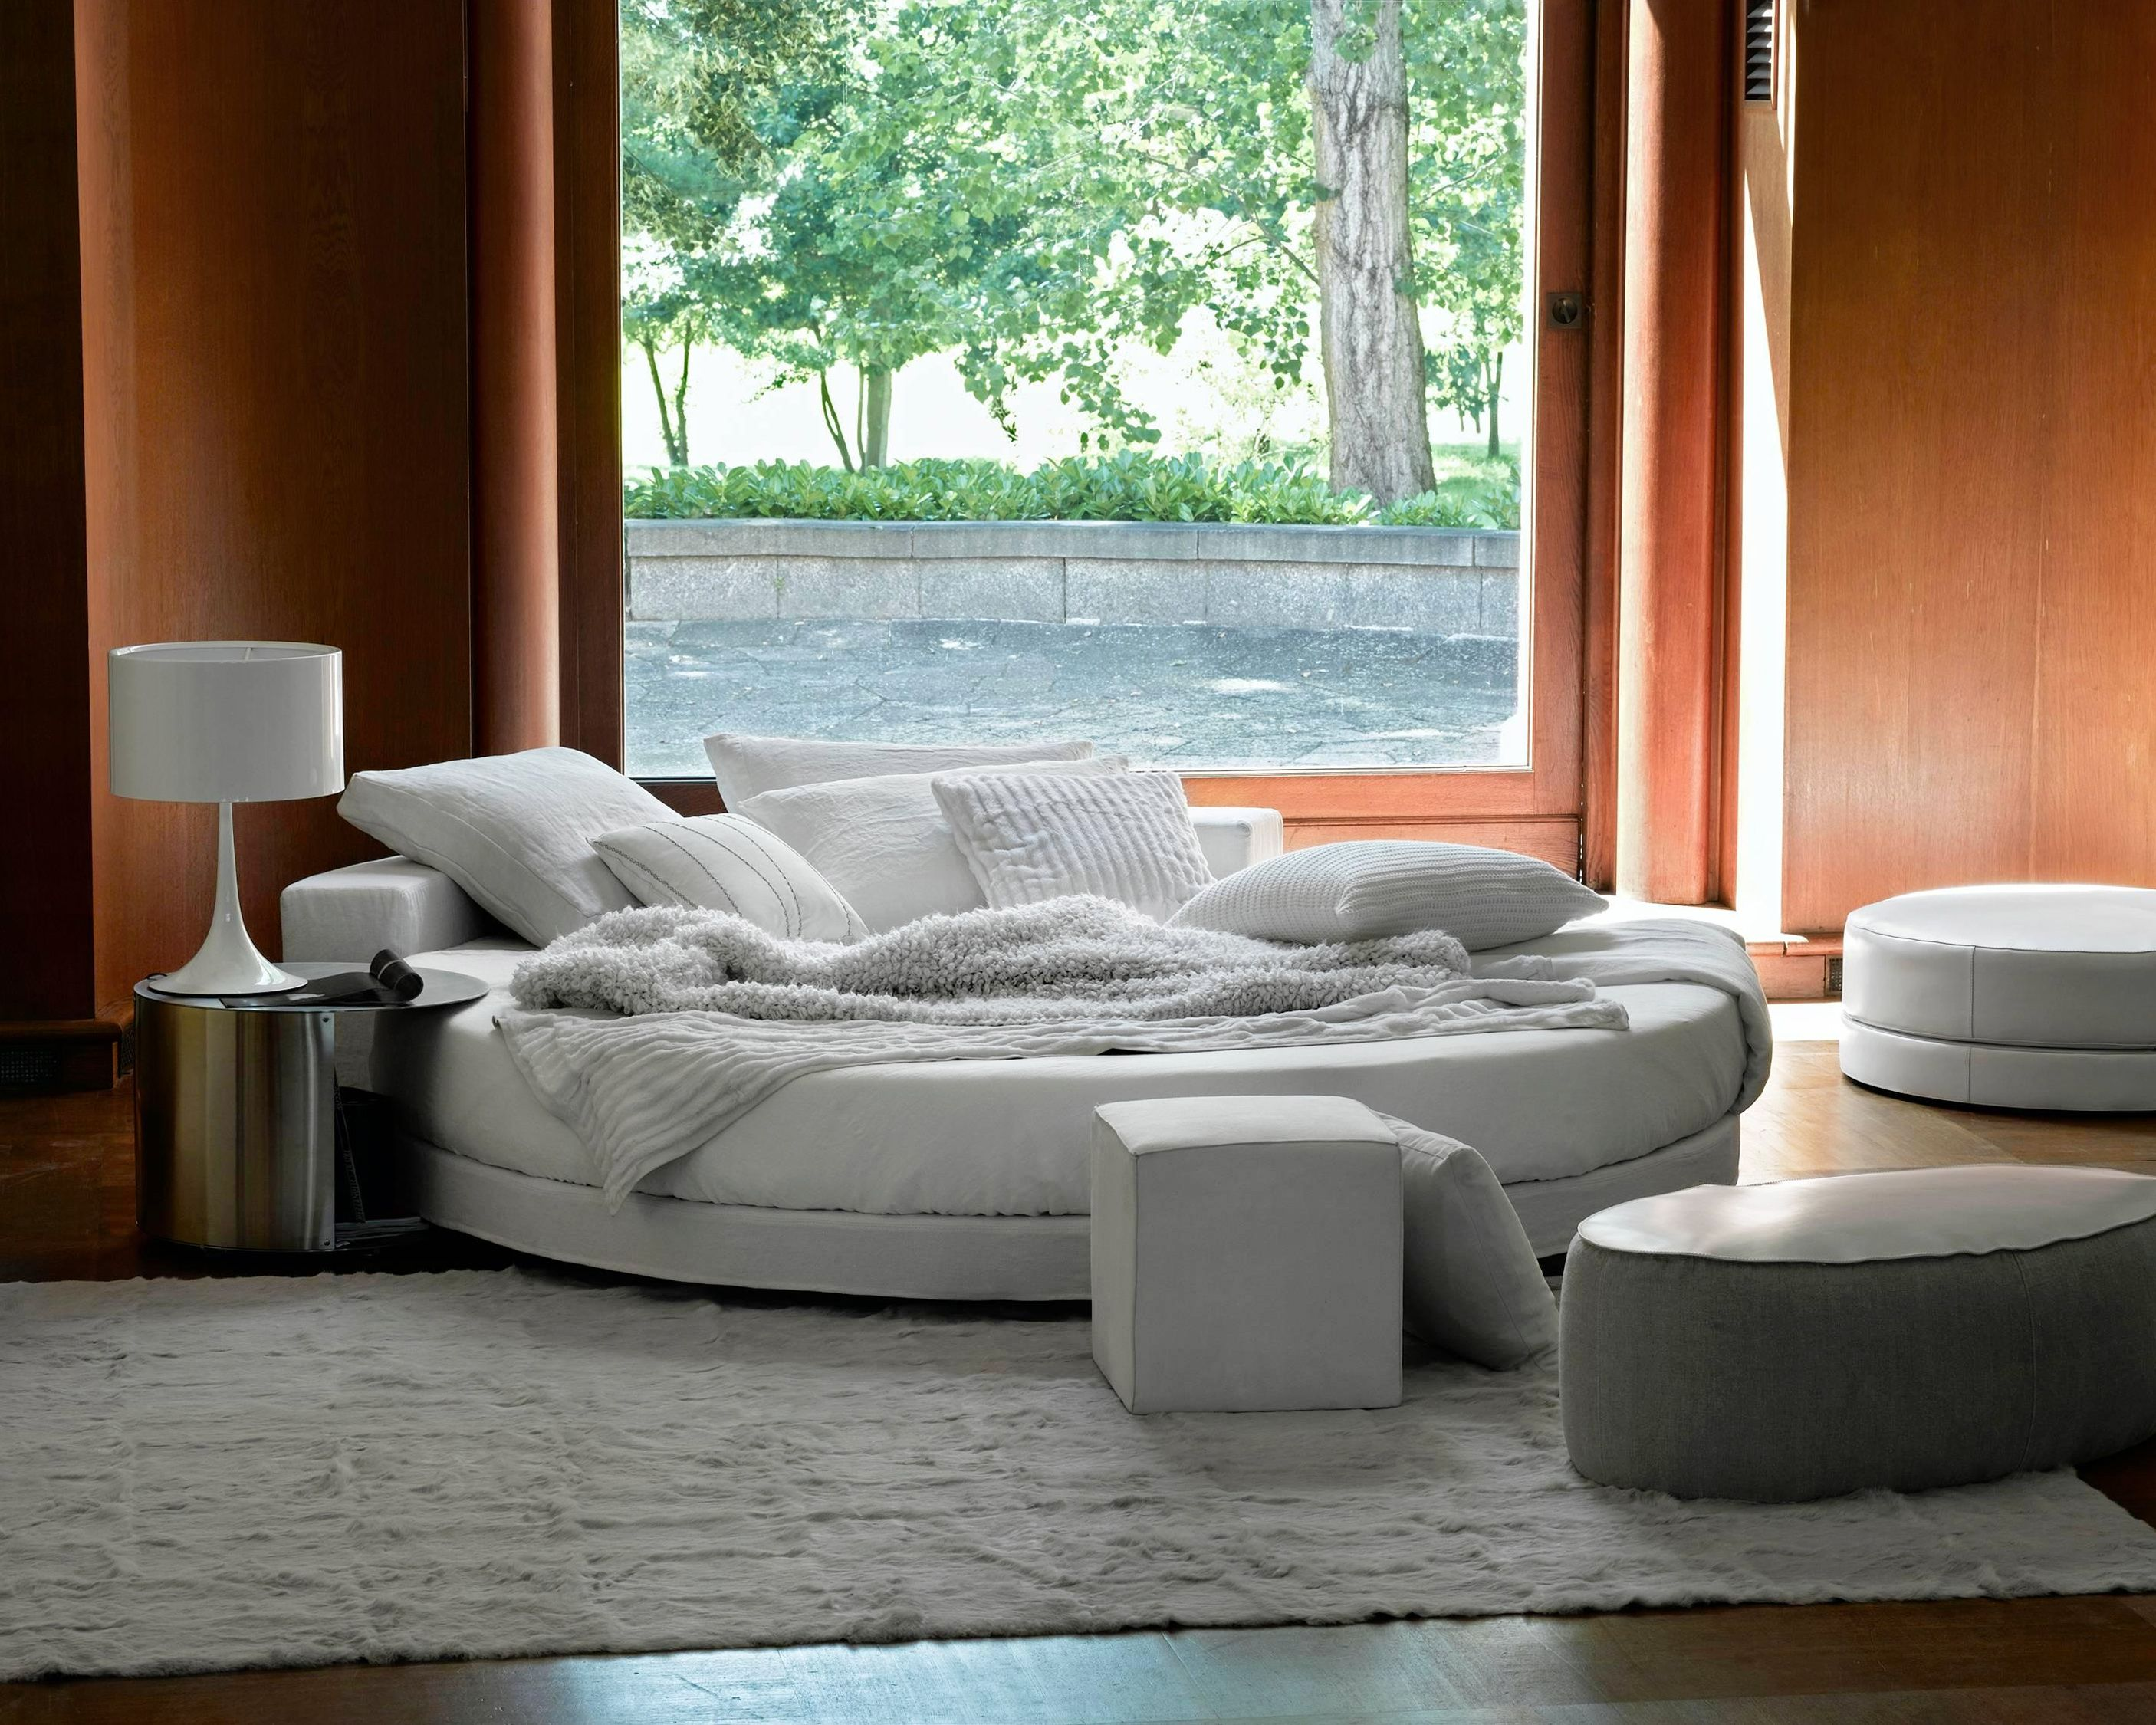 Sleeping on an Island  Round shapes, un-expected design of real beauty. Glamour by Ivano Redaelli is an icon able to pass the years and the change of fashions unscathed: a round bed with elegant and at the same time playful shapes.   _____ Discover more link in bio. #mohd_homedesign #designdetails #designinspiration #interiordesign #designitaliano #productdesign #rest #restroom #nightlife #relaxtime #sleepingroom #bedroom #bedroomdesign #ivanoredaelli #luxury